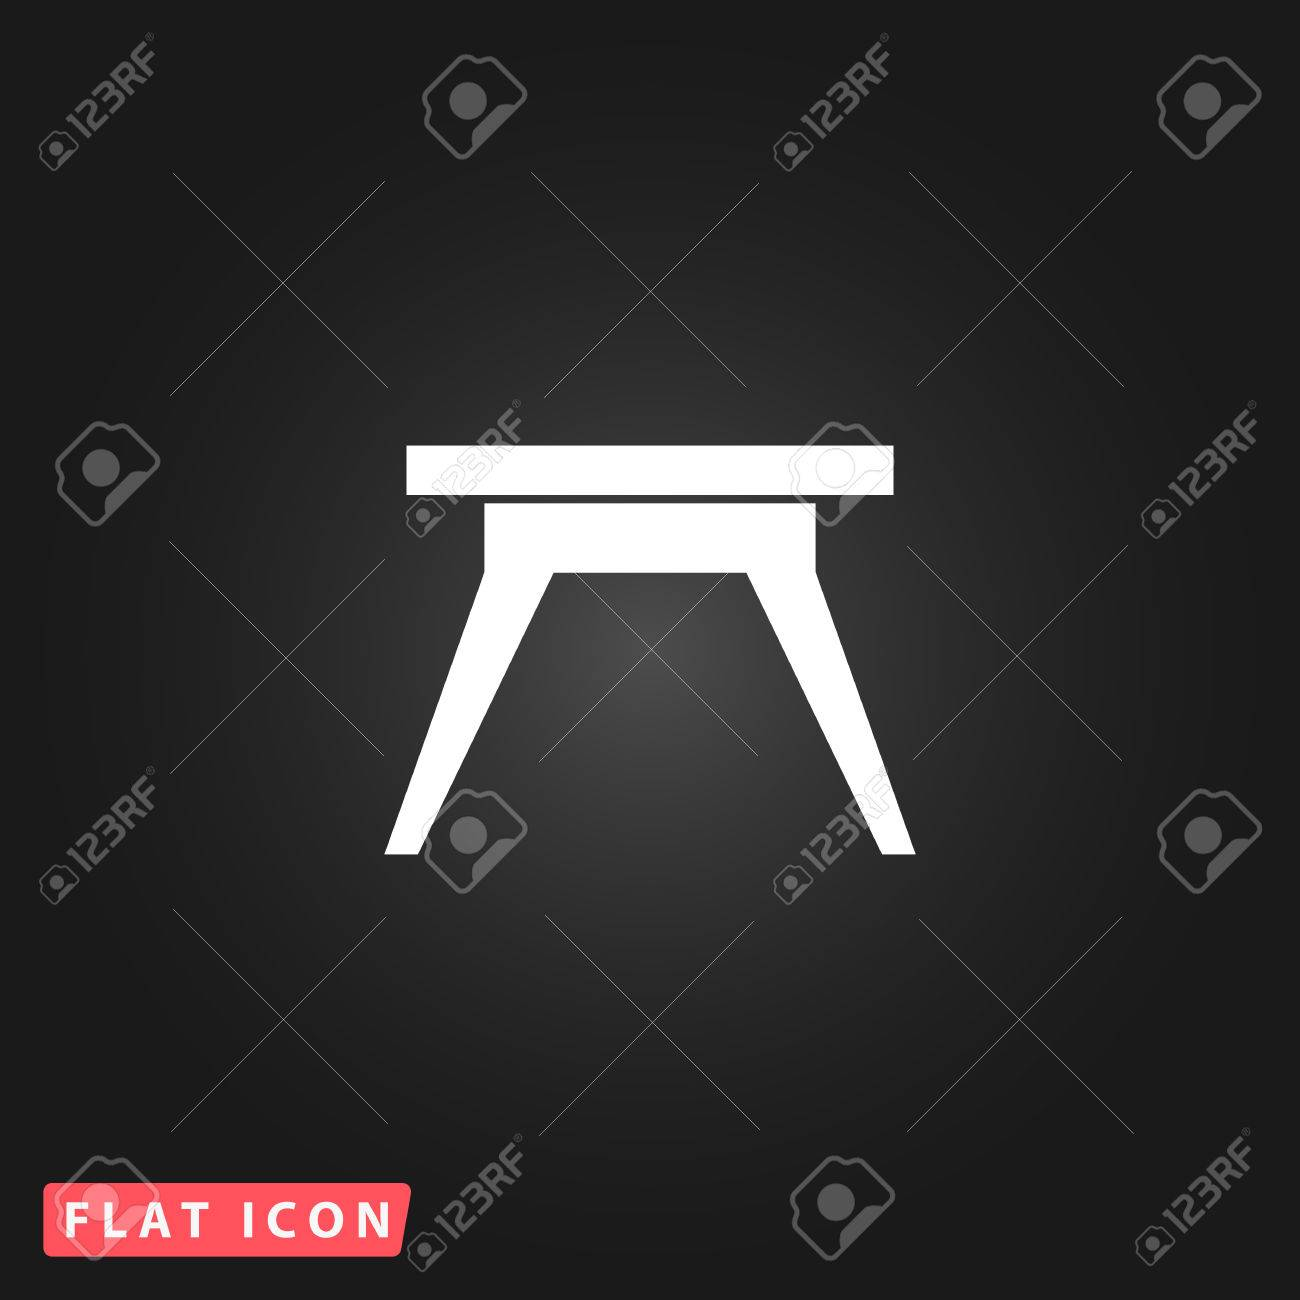 Simple table free other icons - Small Table White Flat Simple Vector Icon On Black Background Stock Vector 51592982